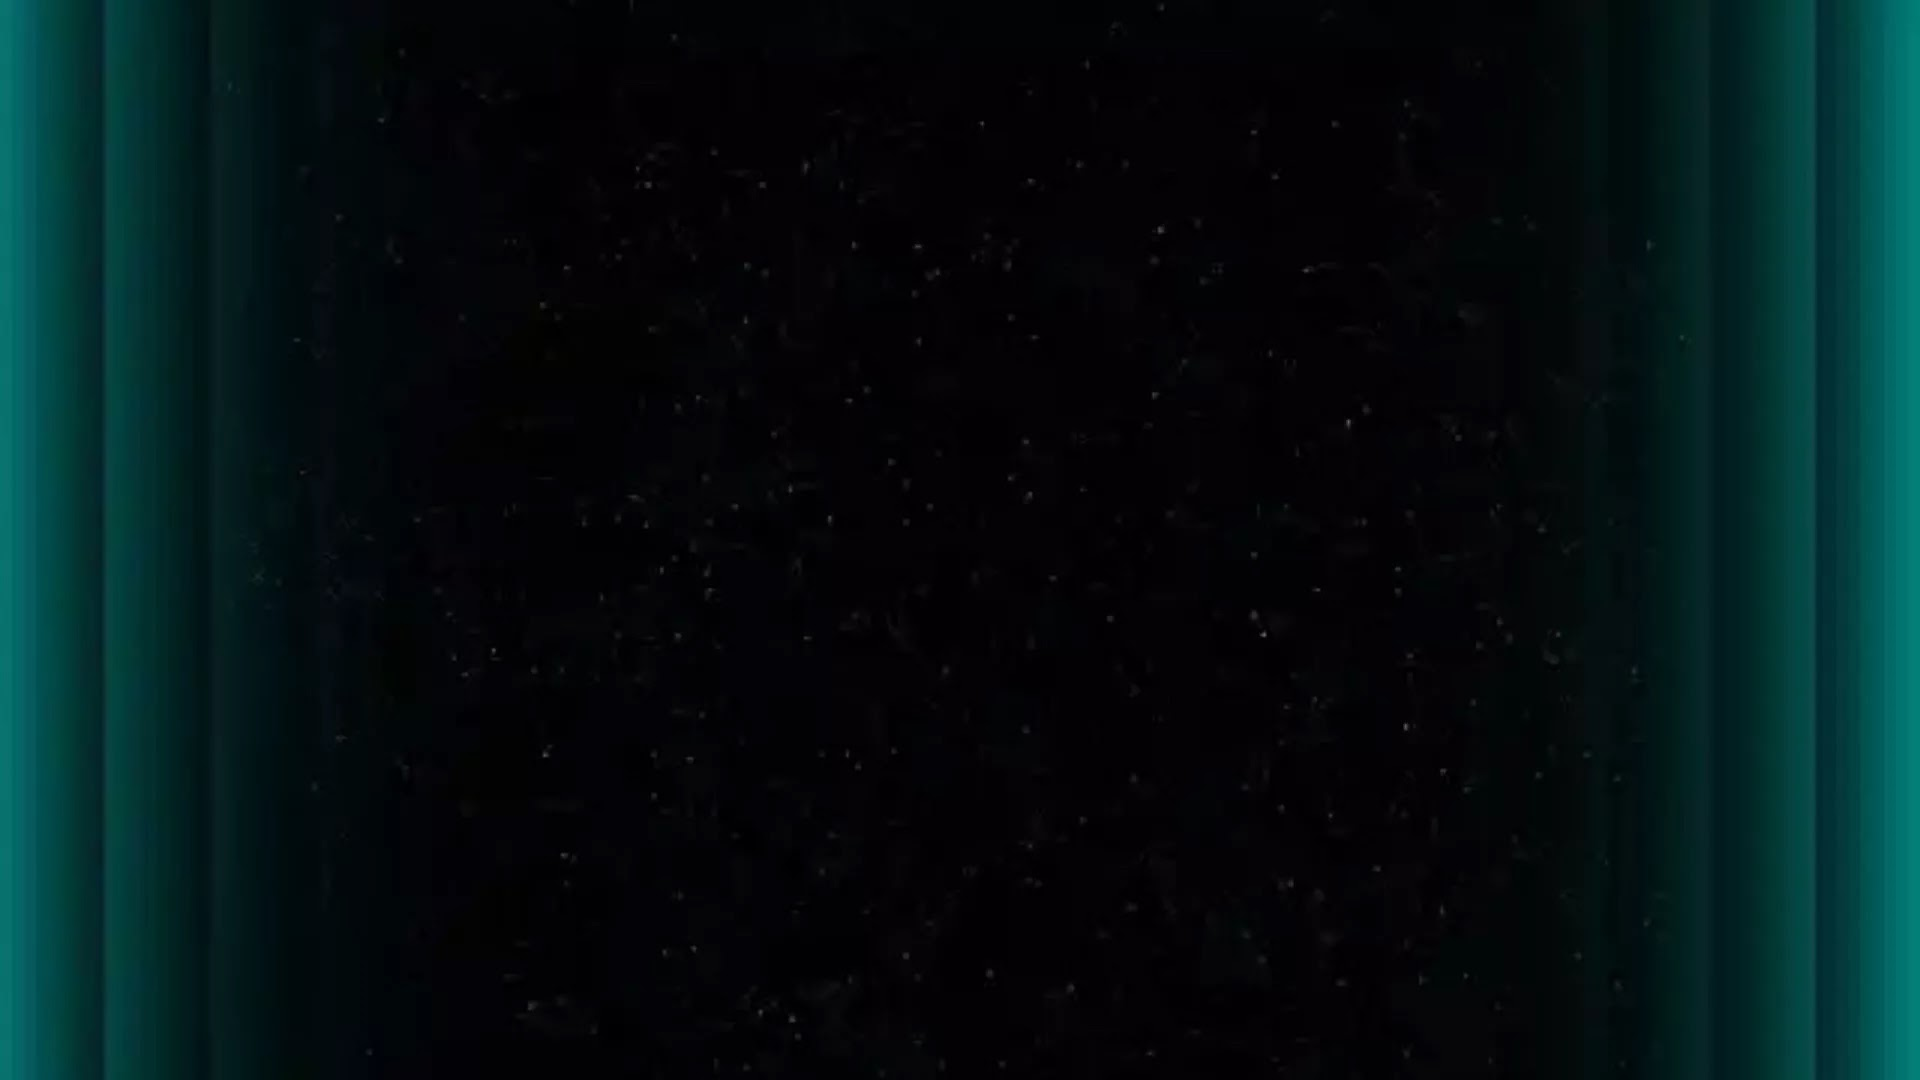 black wallpaper with stars 2